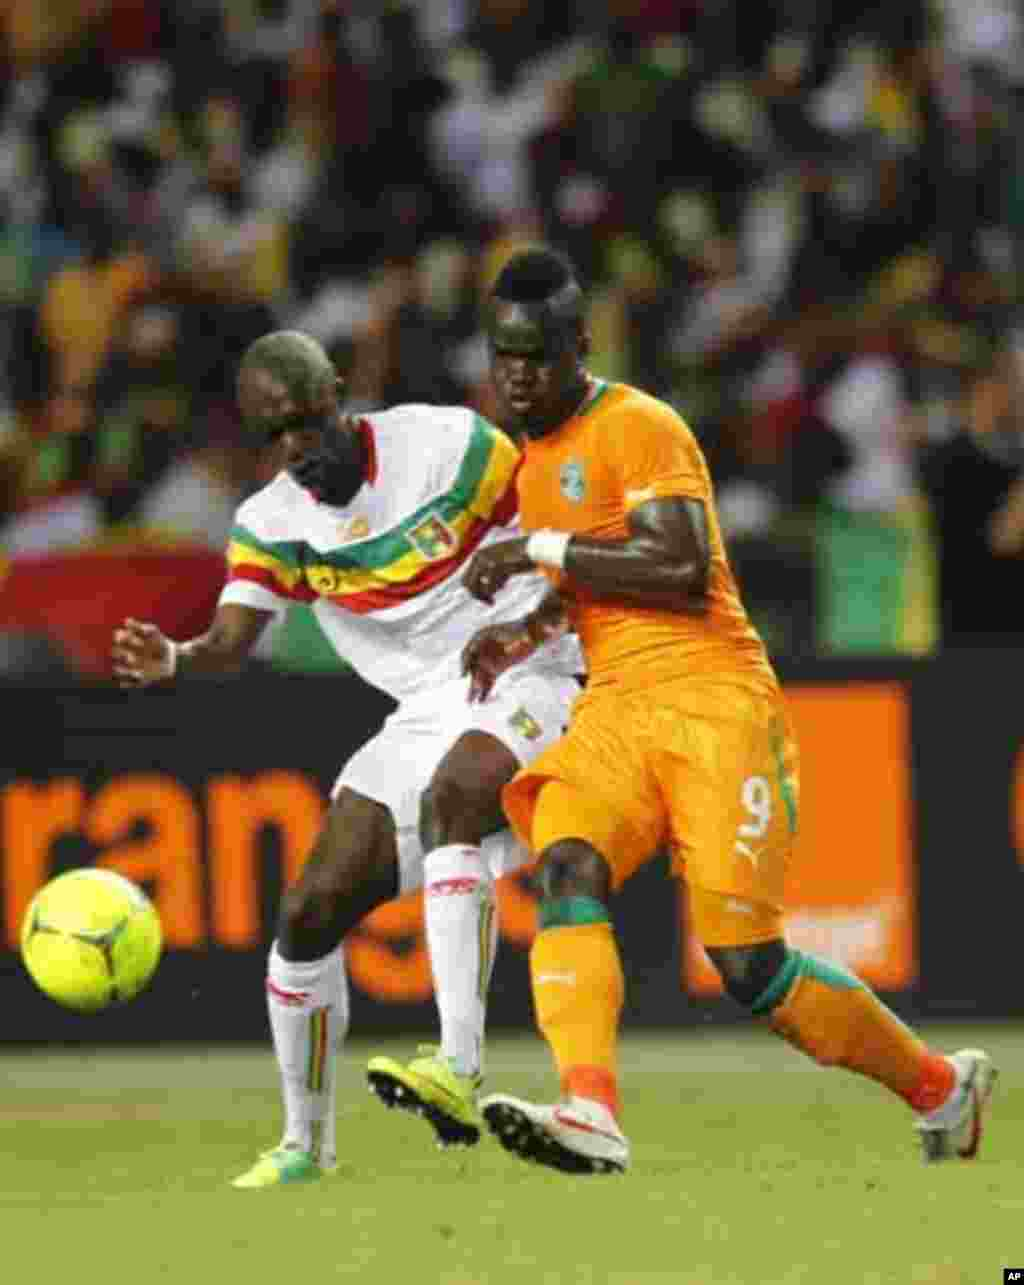 Ivory Coast's Ismael Tiote (9) fights for the ball against Mali's Bakare Traore during their African Nations Cup semi-final soccer match at the Stade De L'Amitie Stadium in Gabon's capital Libreville February 8, 2012.